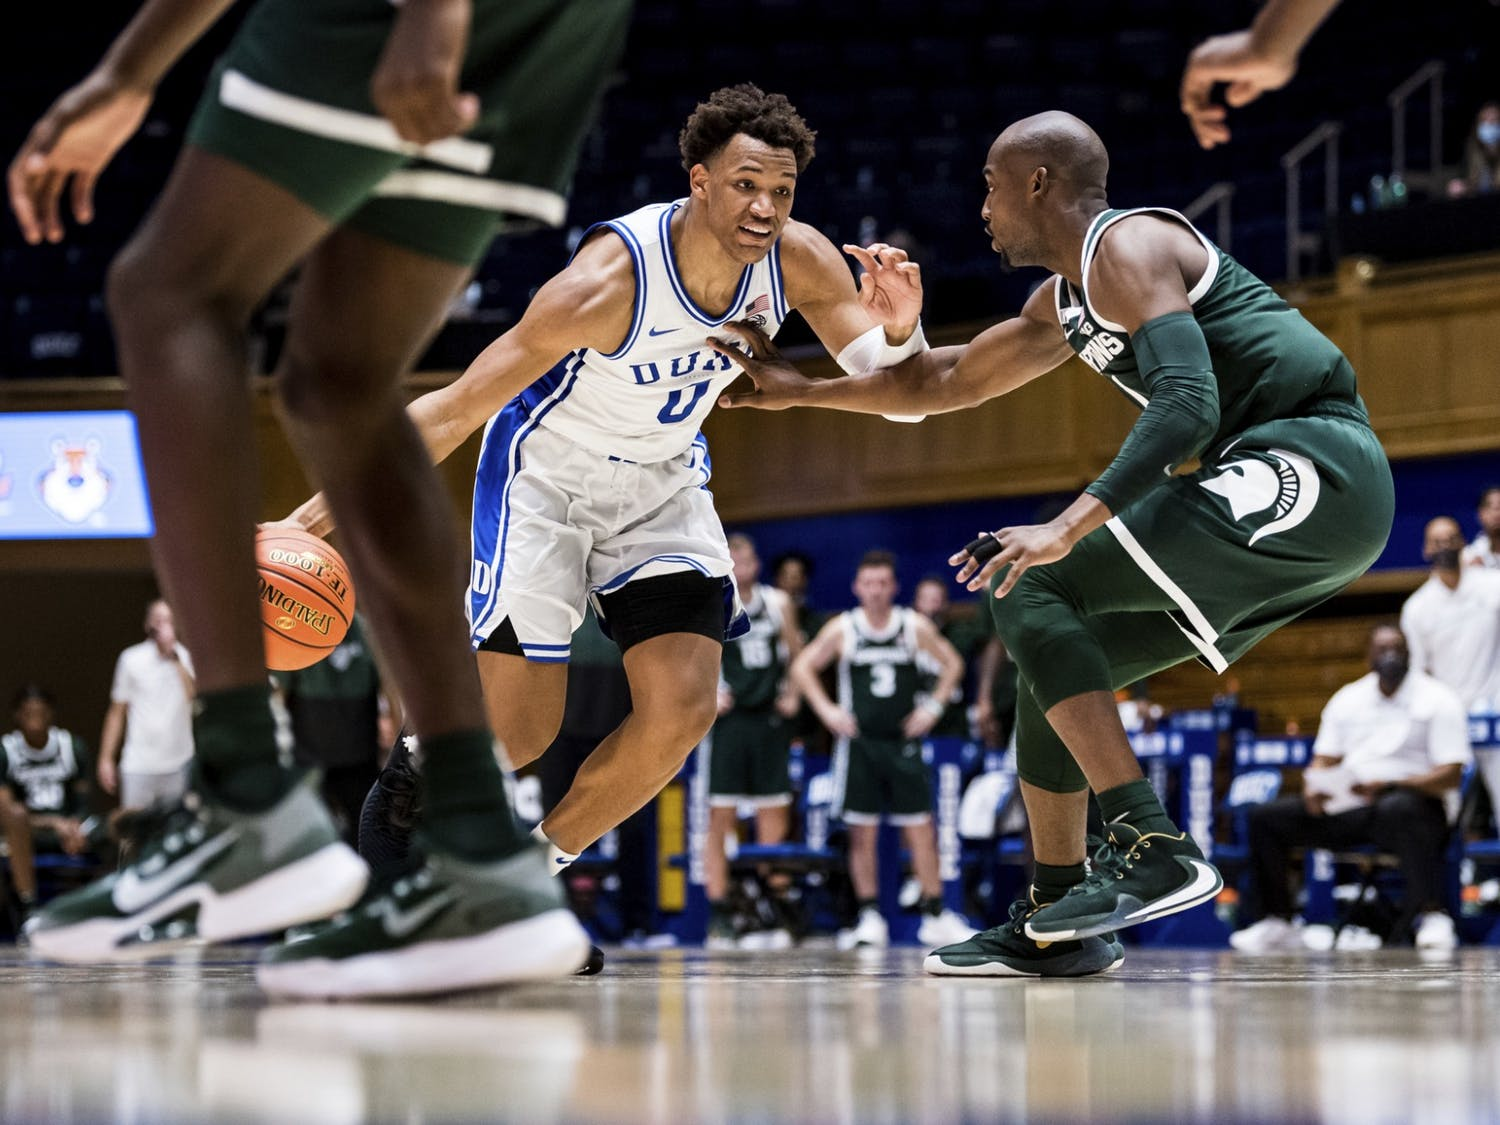 The Blue Devils will need their veterans, particularly Wendell Moore Jr., to step up in the scoring department Friday night.